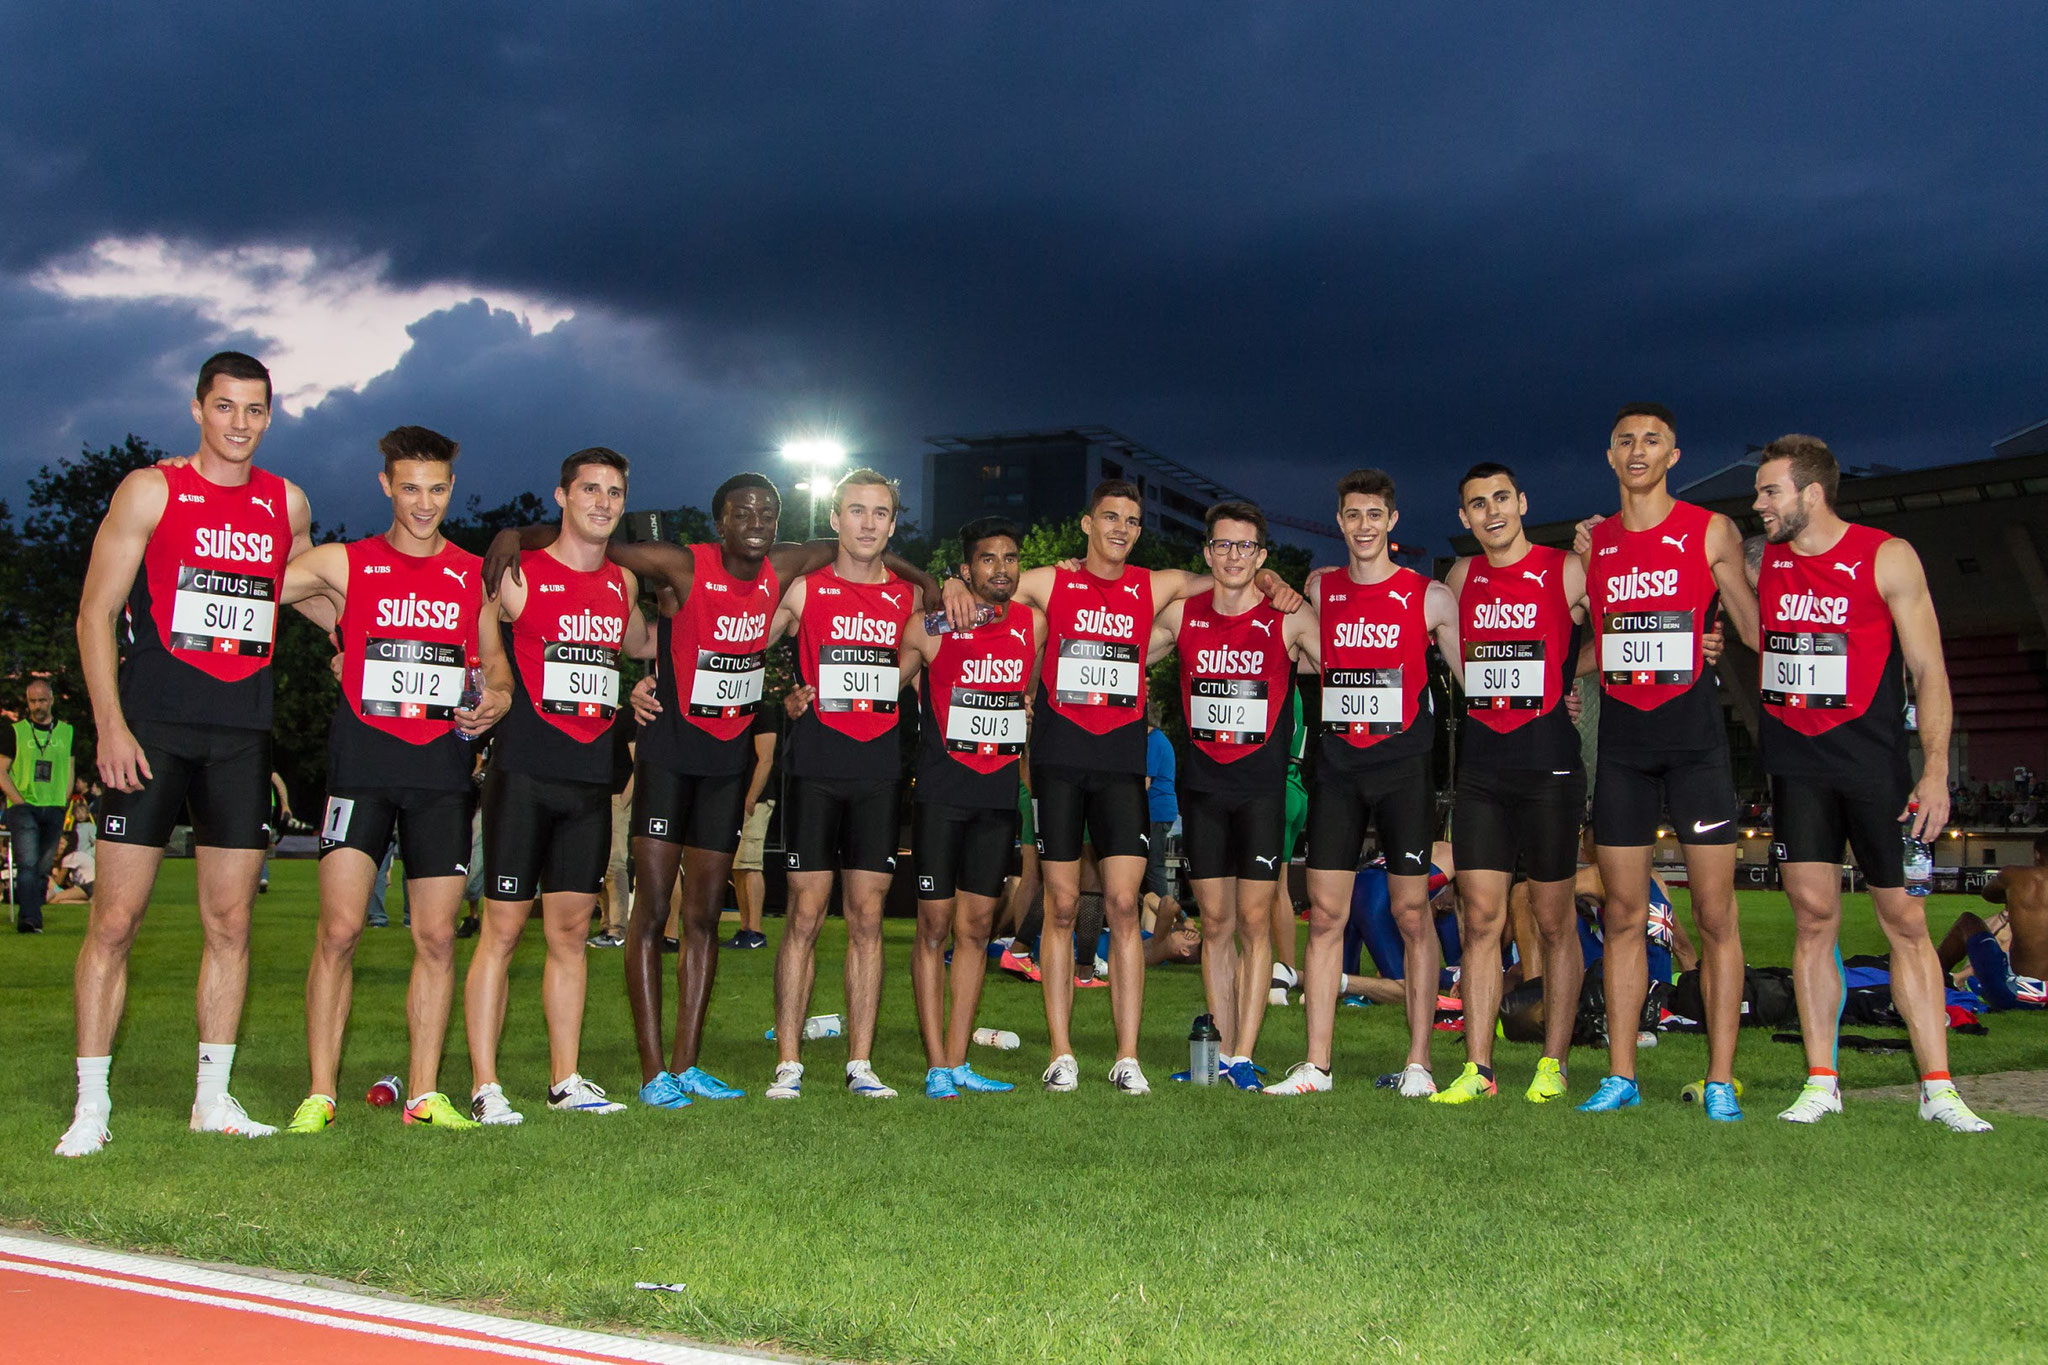 4x400m Team Switzerland Citius